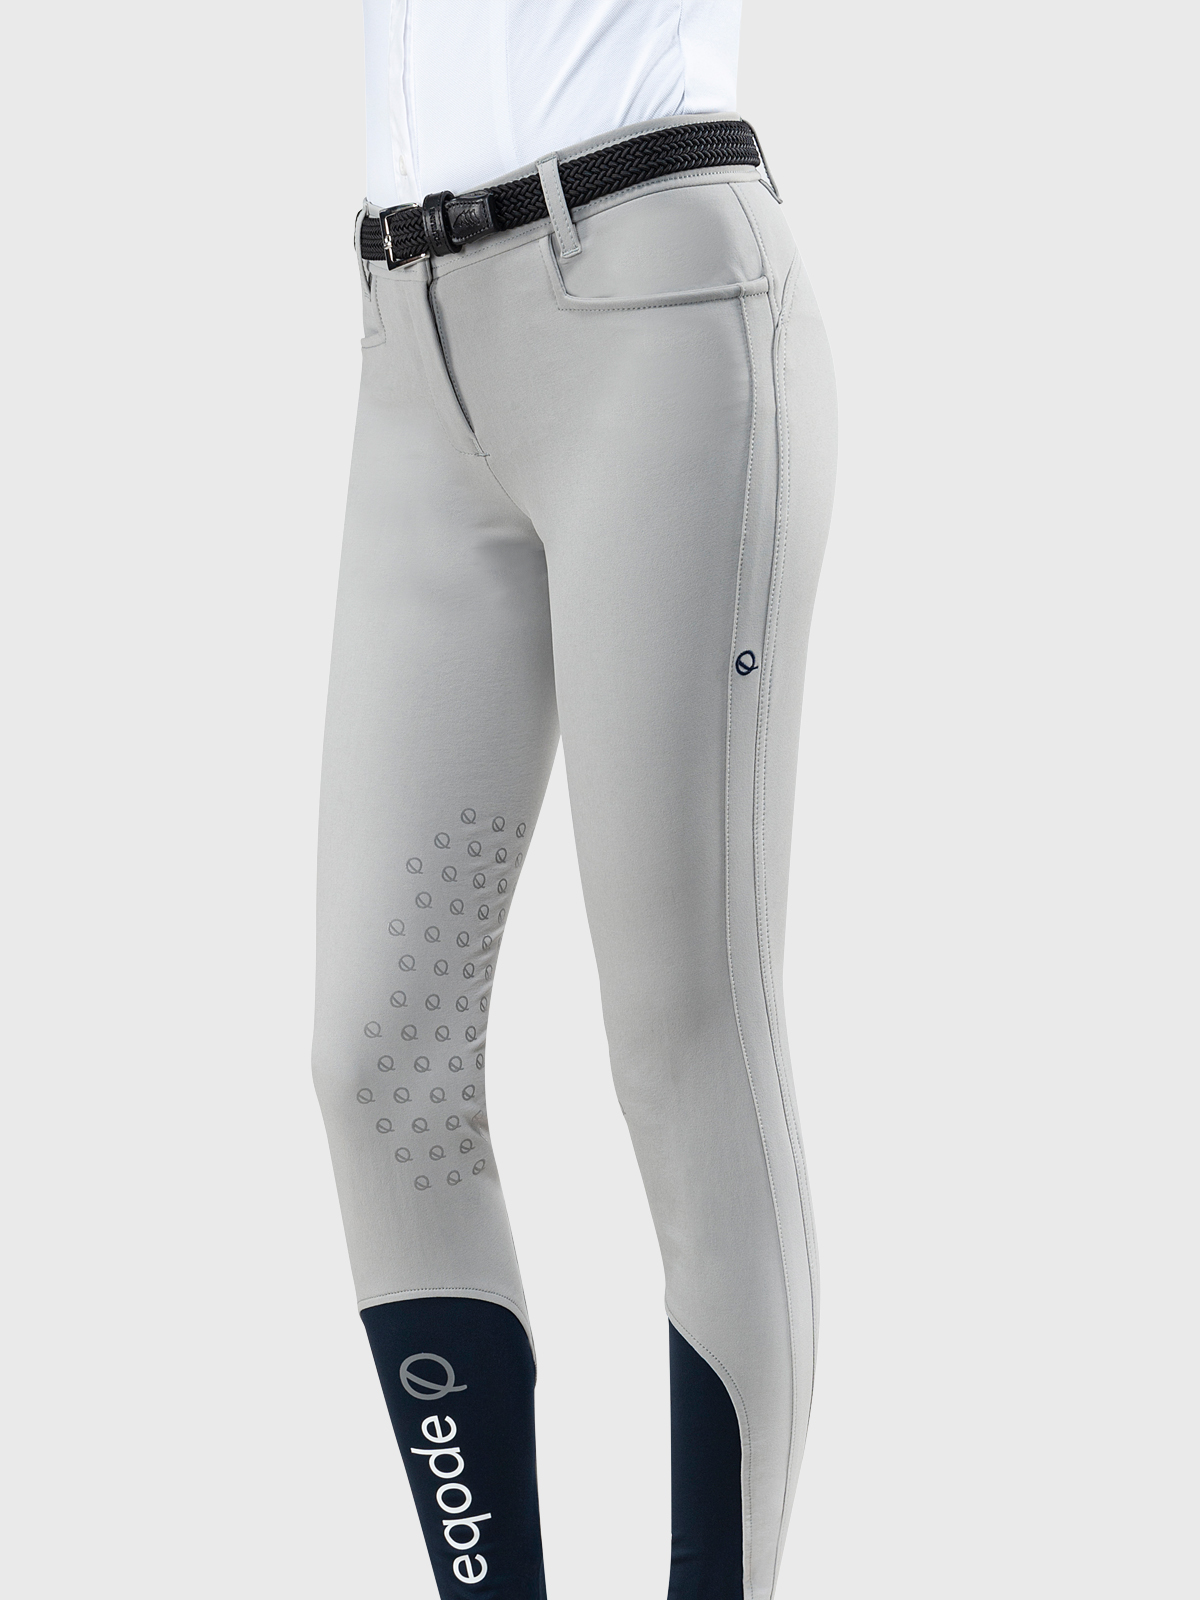 EQODE WOMEN'S BREECHES WITH KNEE GRIP 8